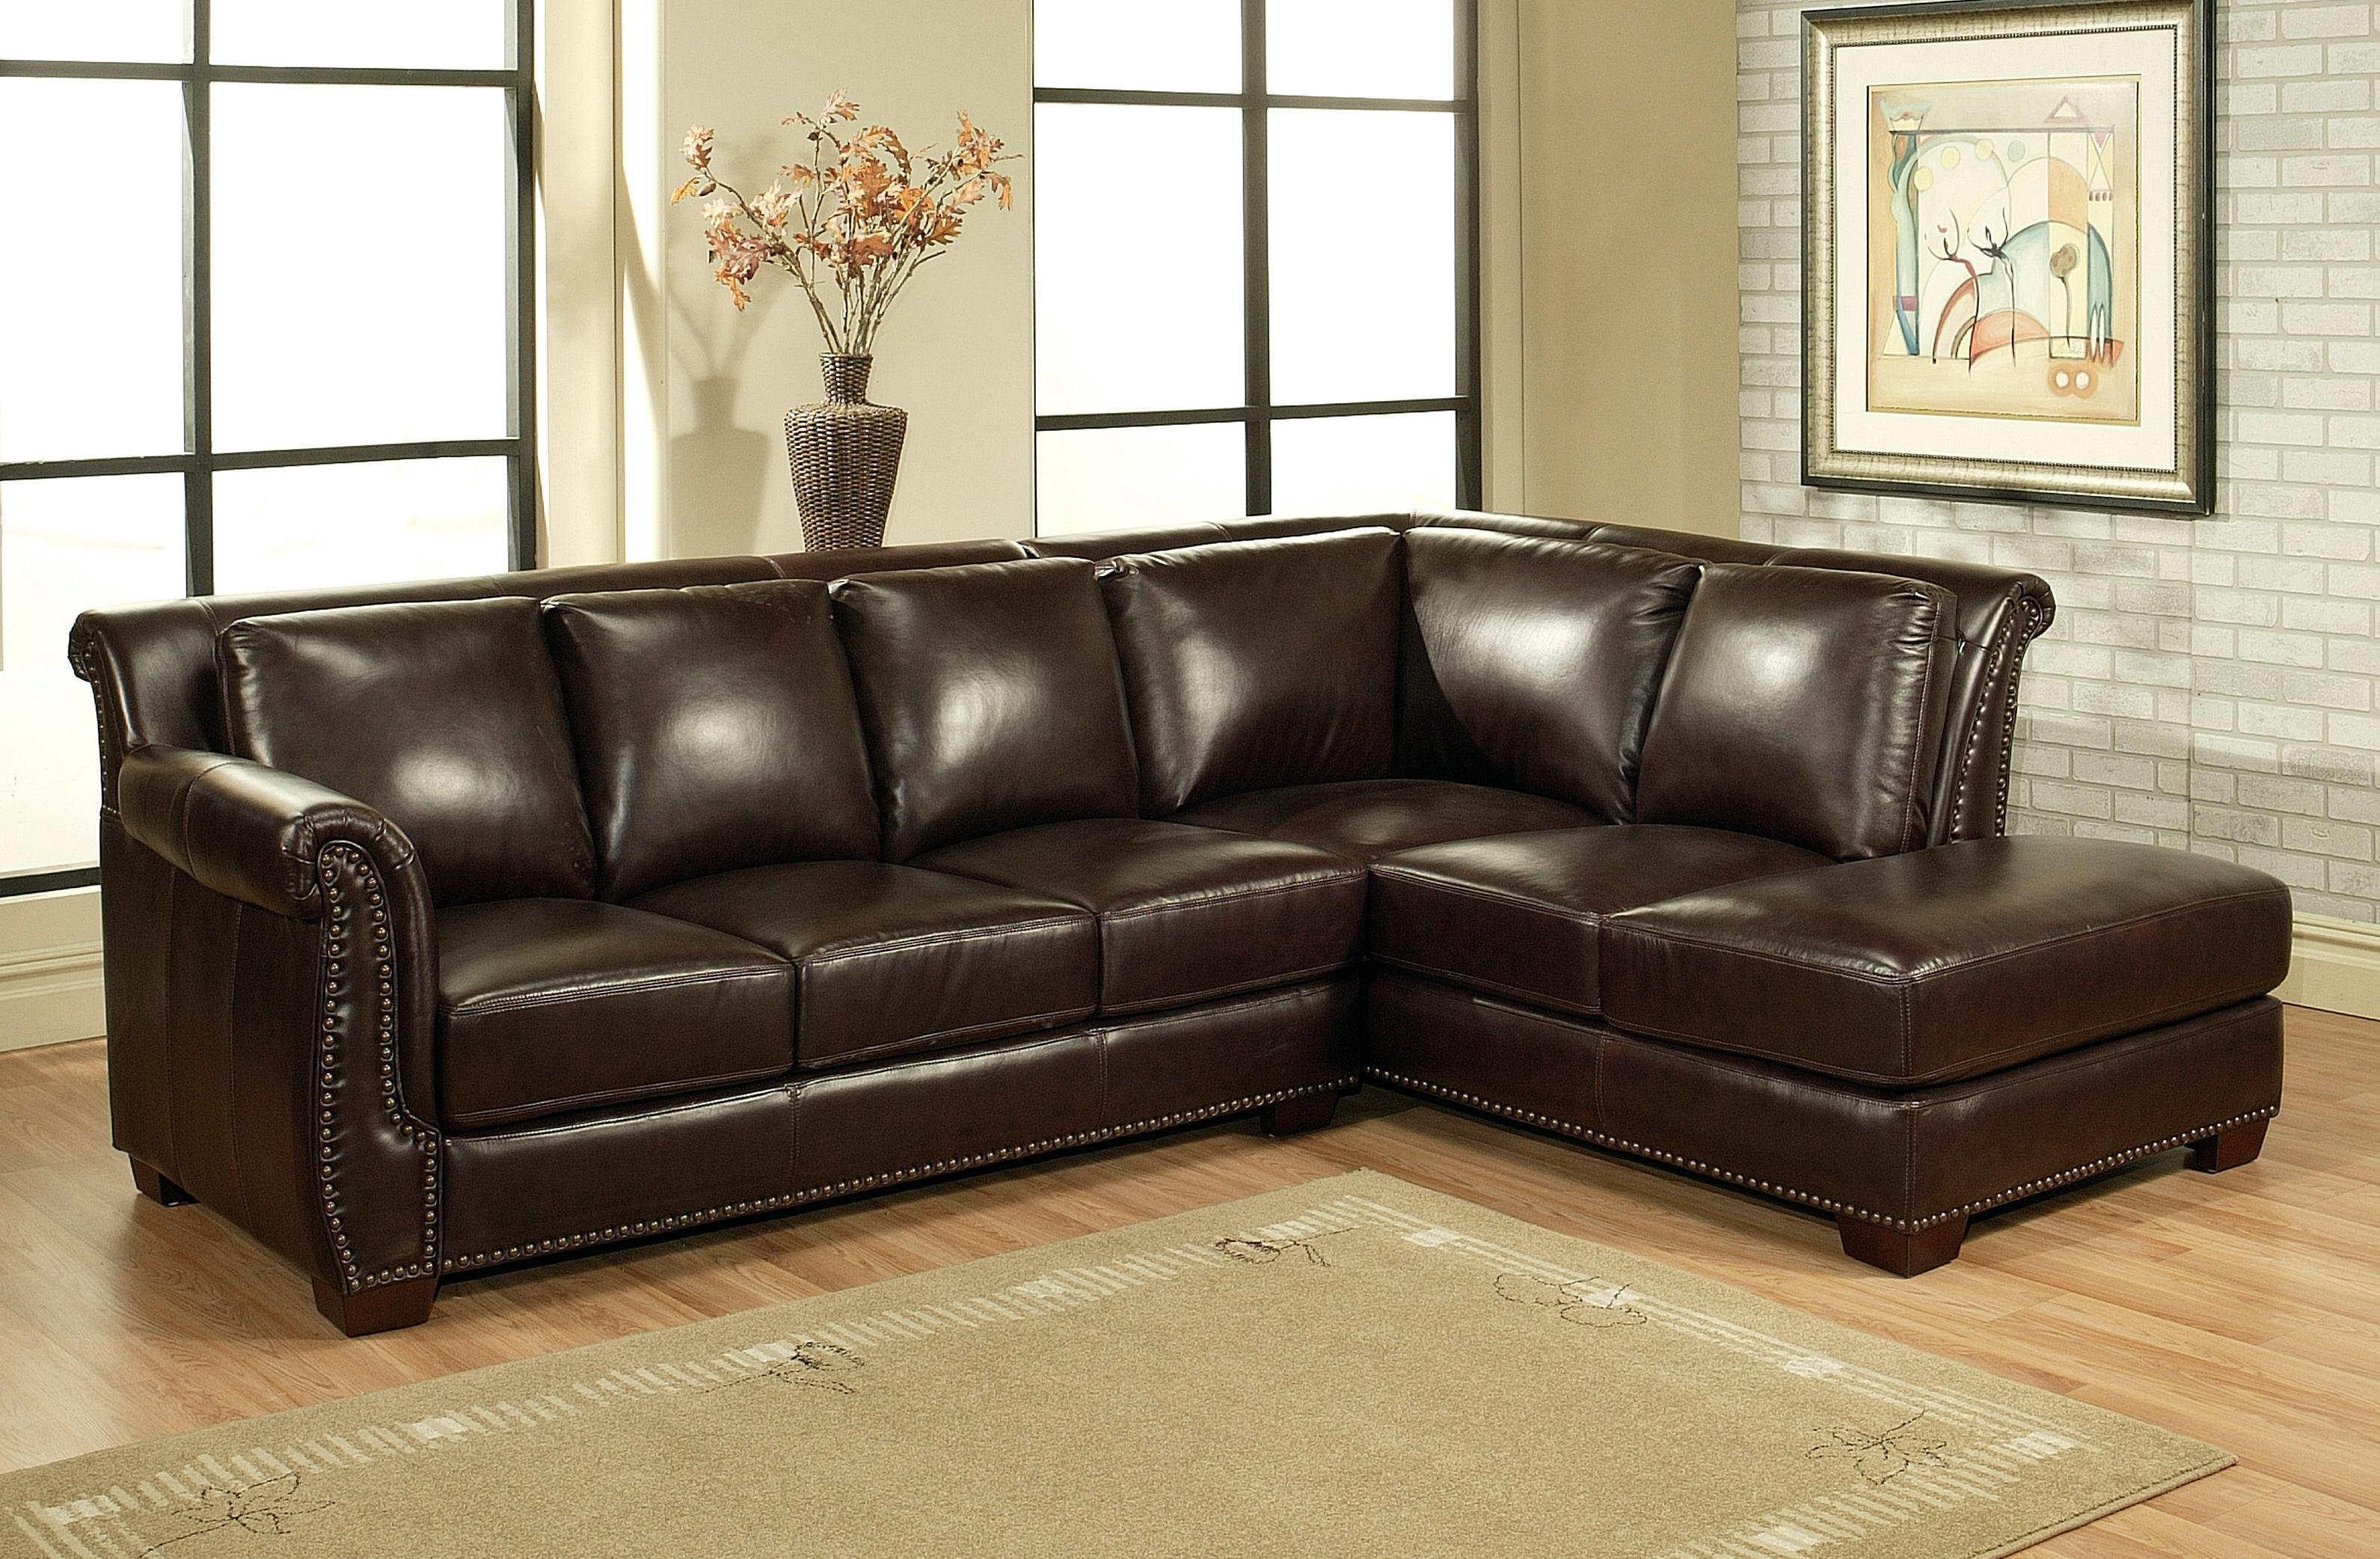 Vintage Leather Sectional With Chaise | : Decorate For Leather Within Vintage Leather Sectional Sofas (Image 20 of 20)